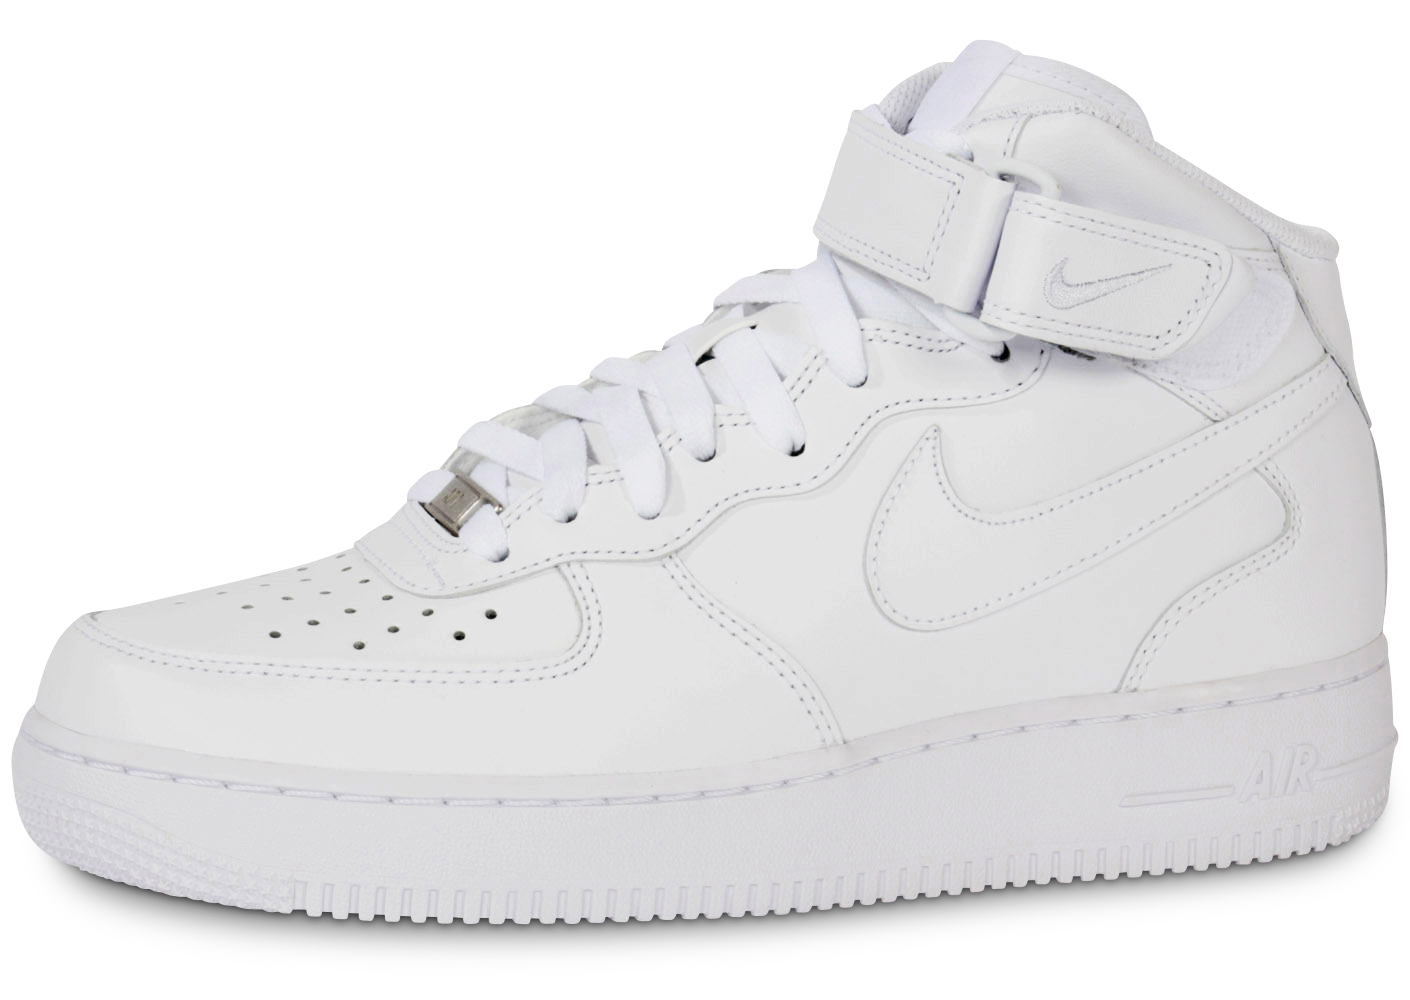 save off 8f0bc 9b46f Nike homme air force 1 mid 07 blanche baskets